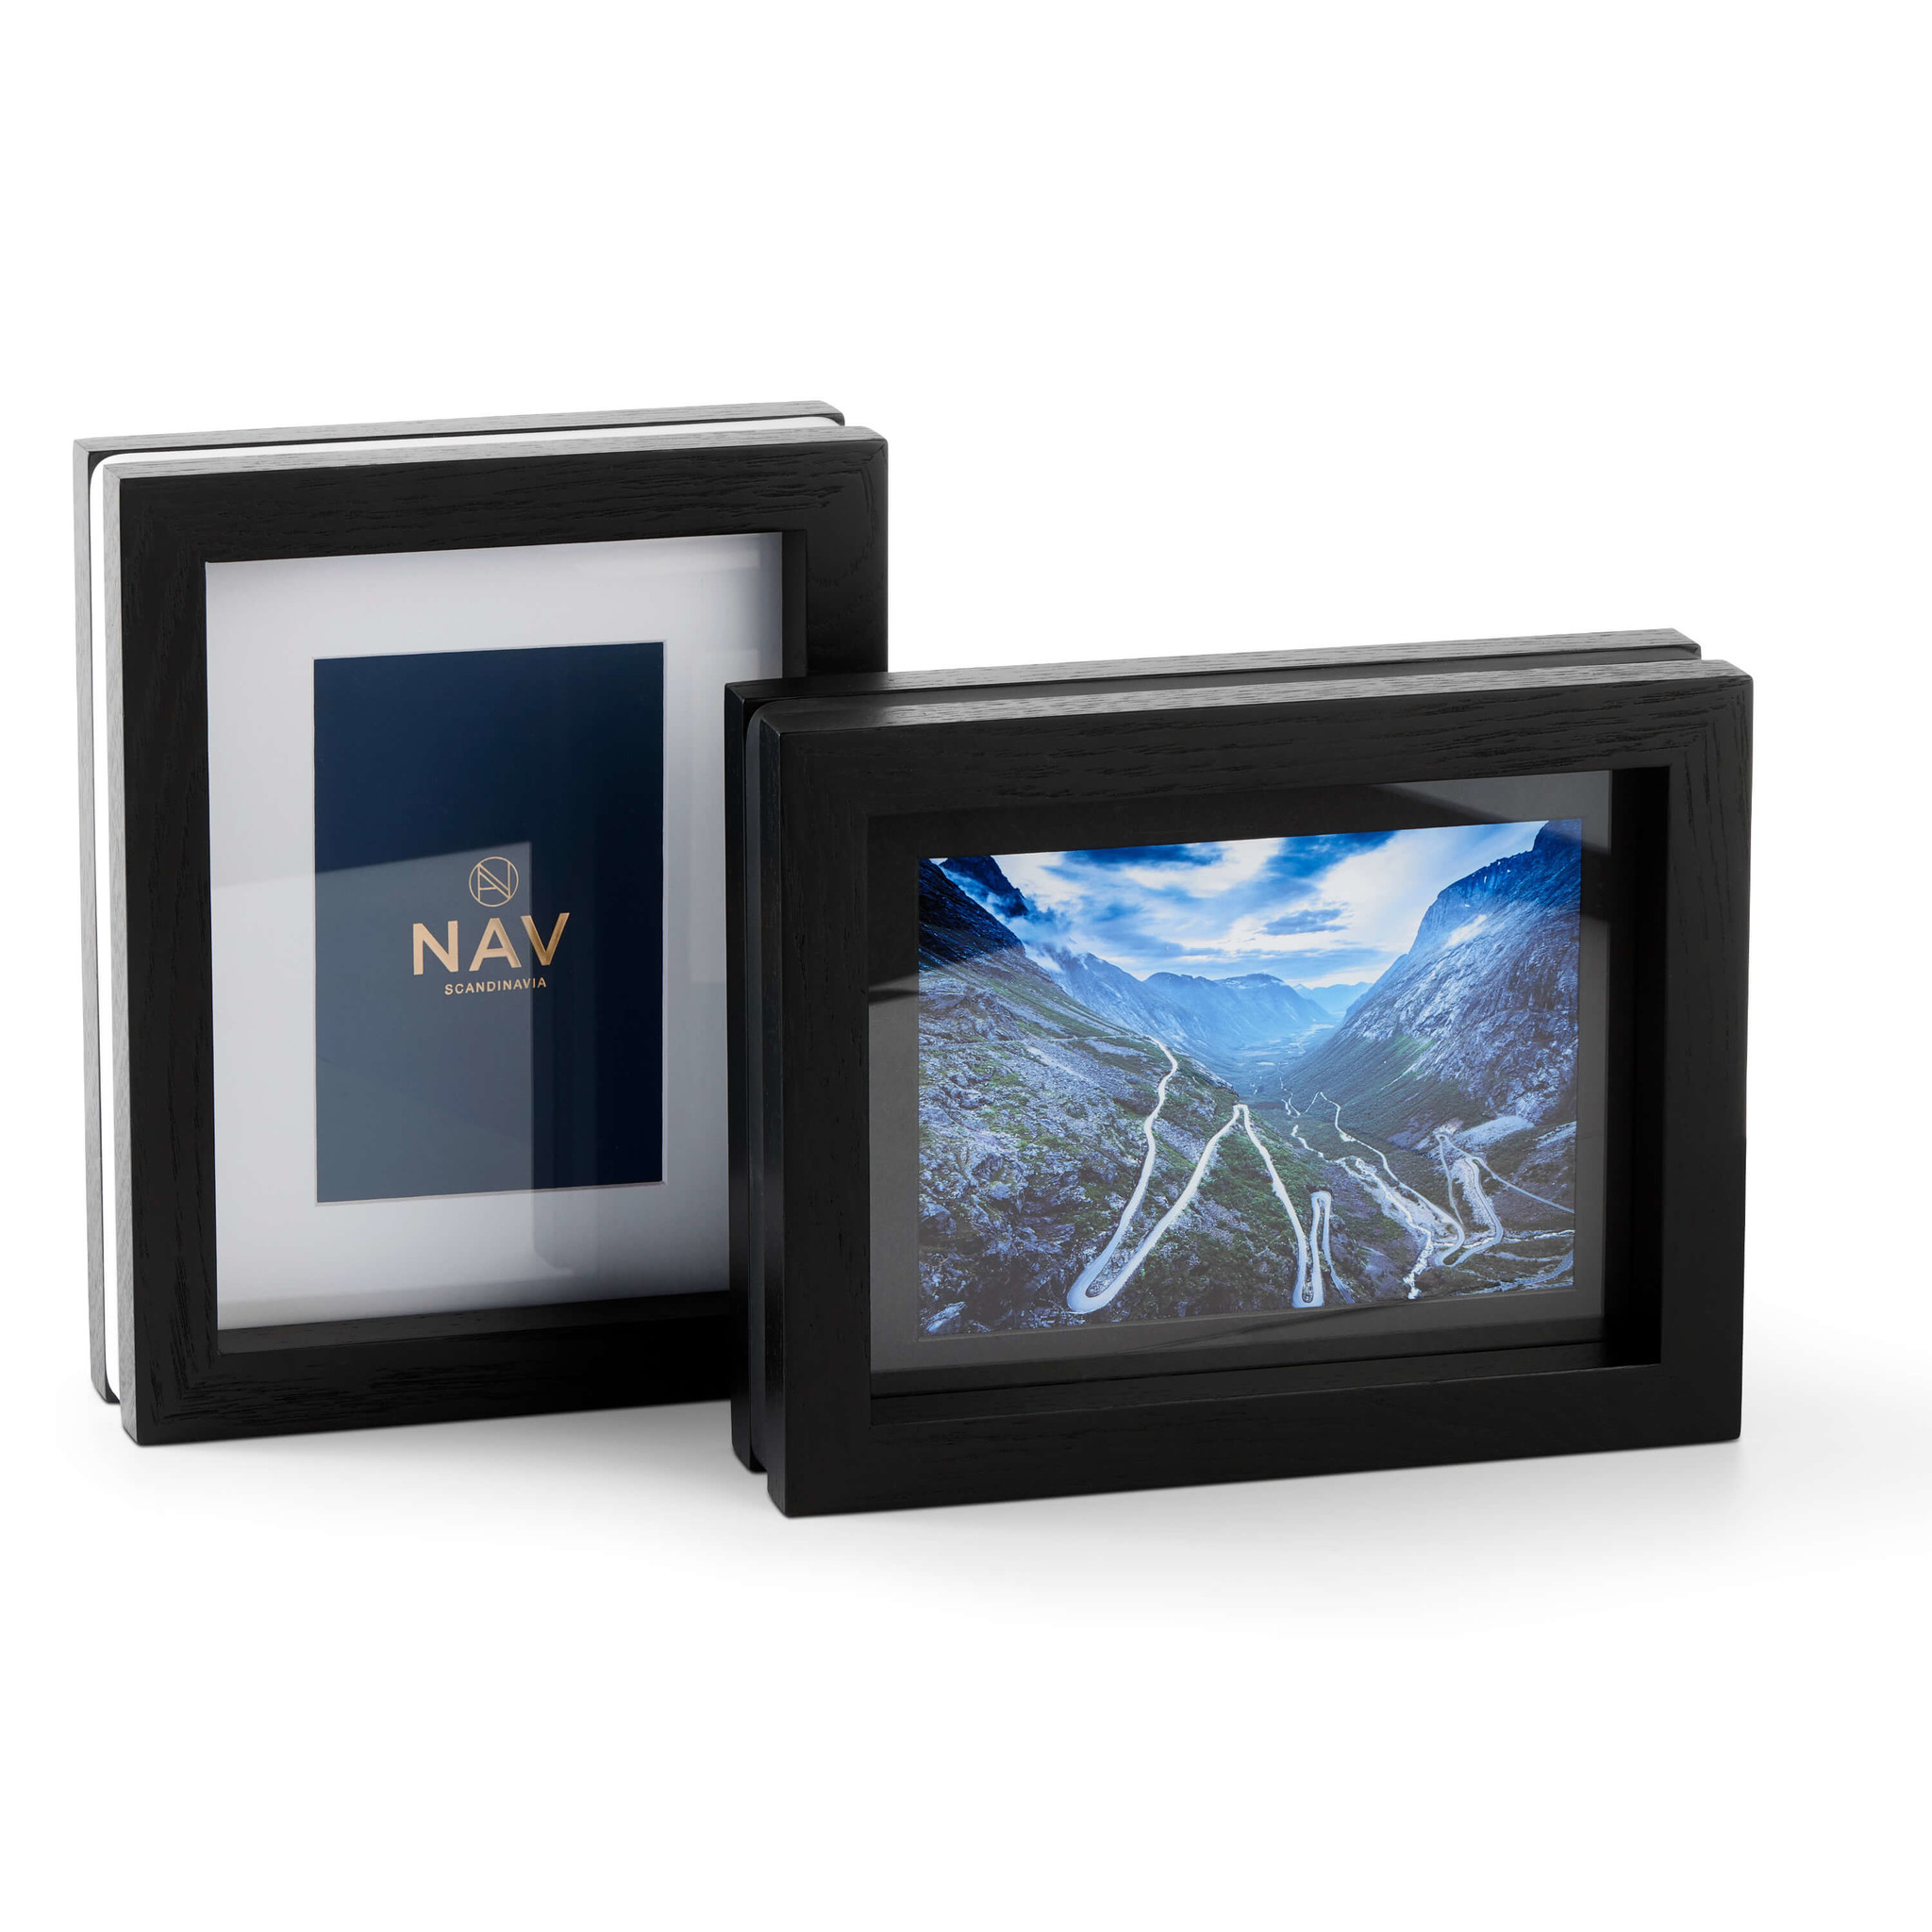 NAV Scandinavia CHANGE multi frame black wood